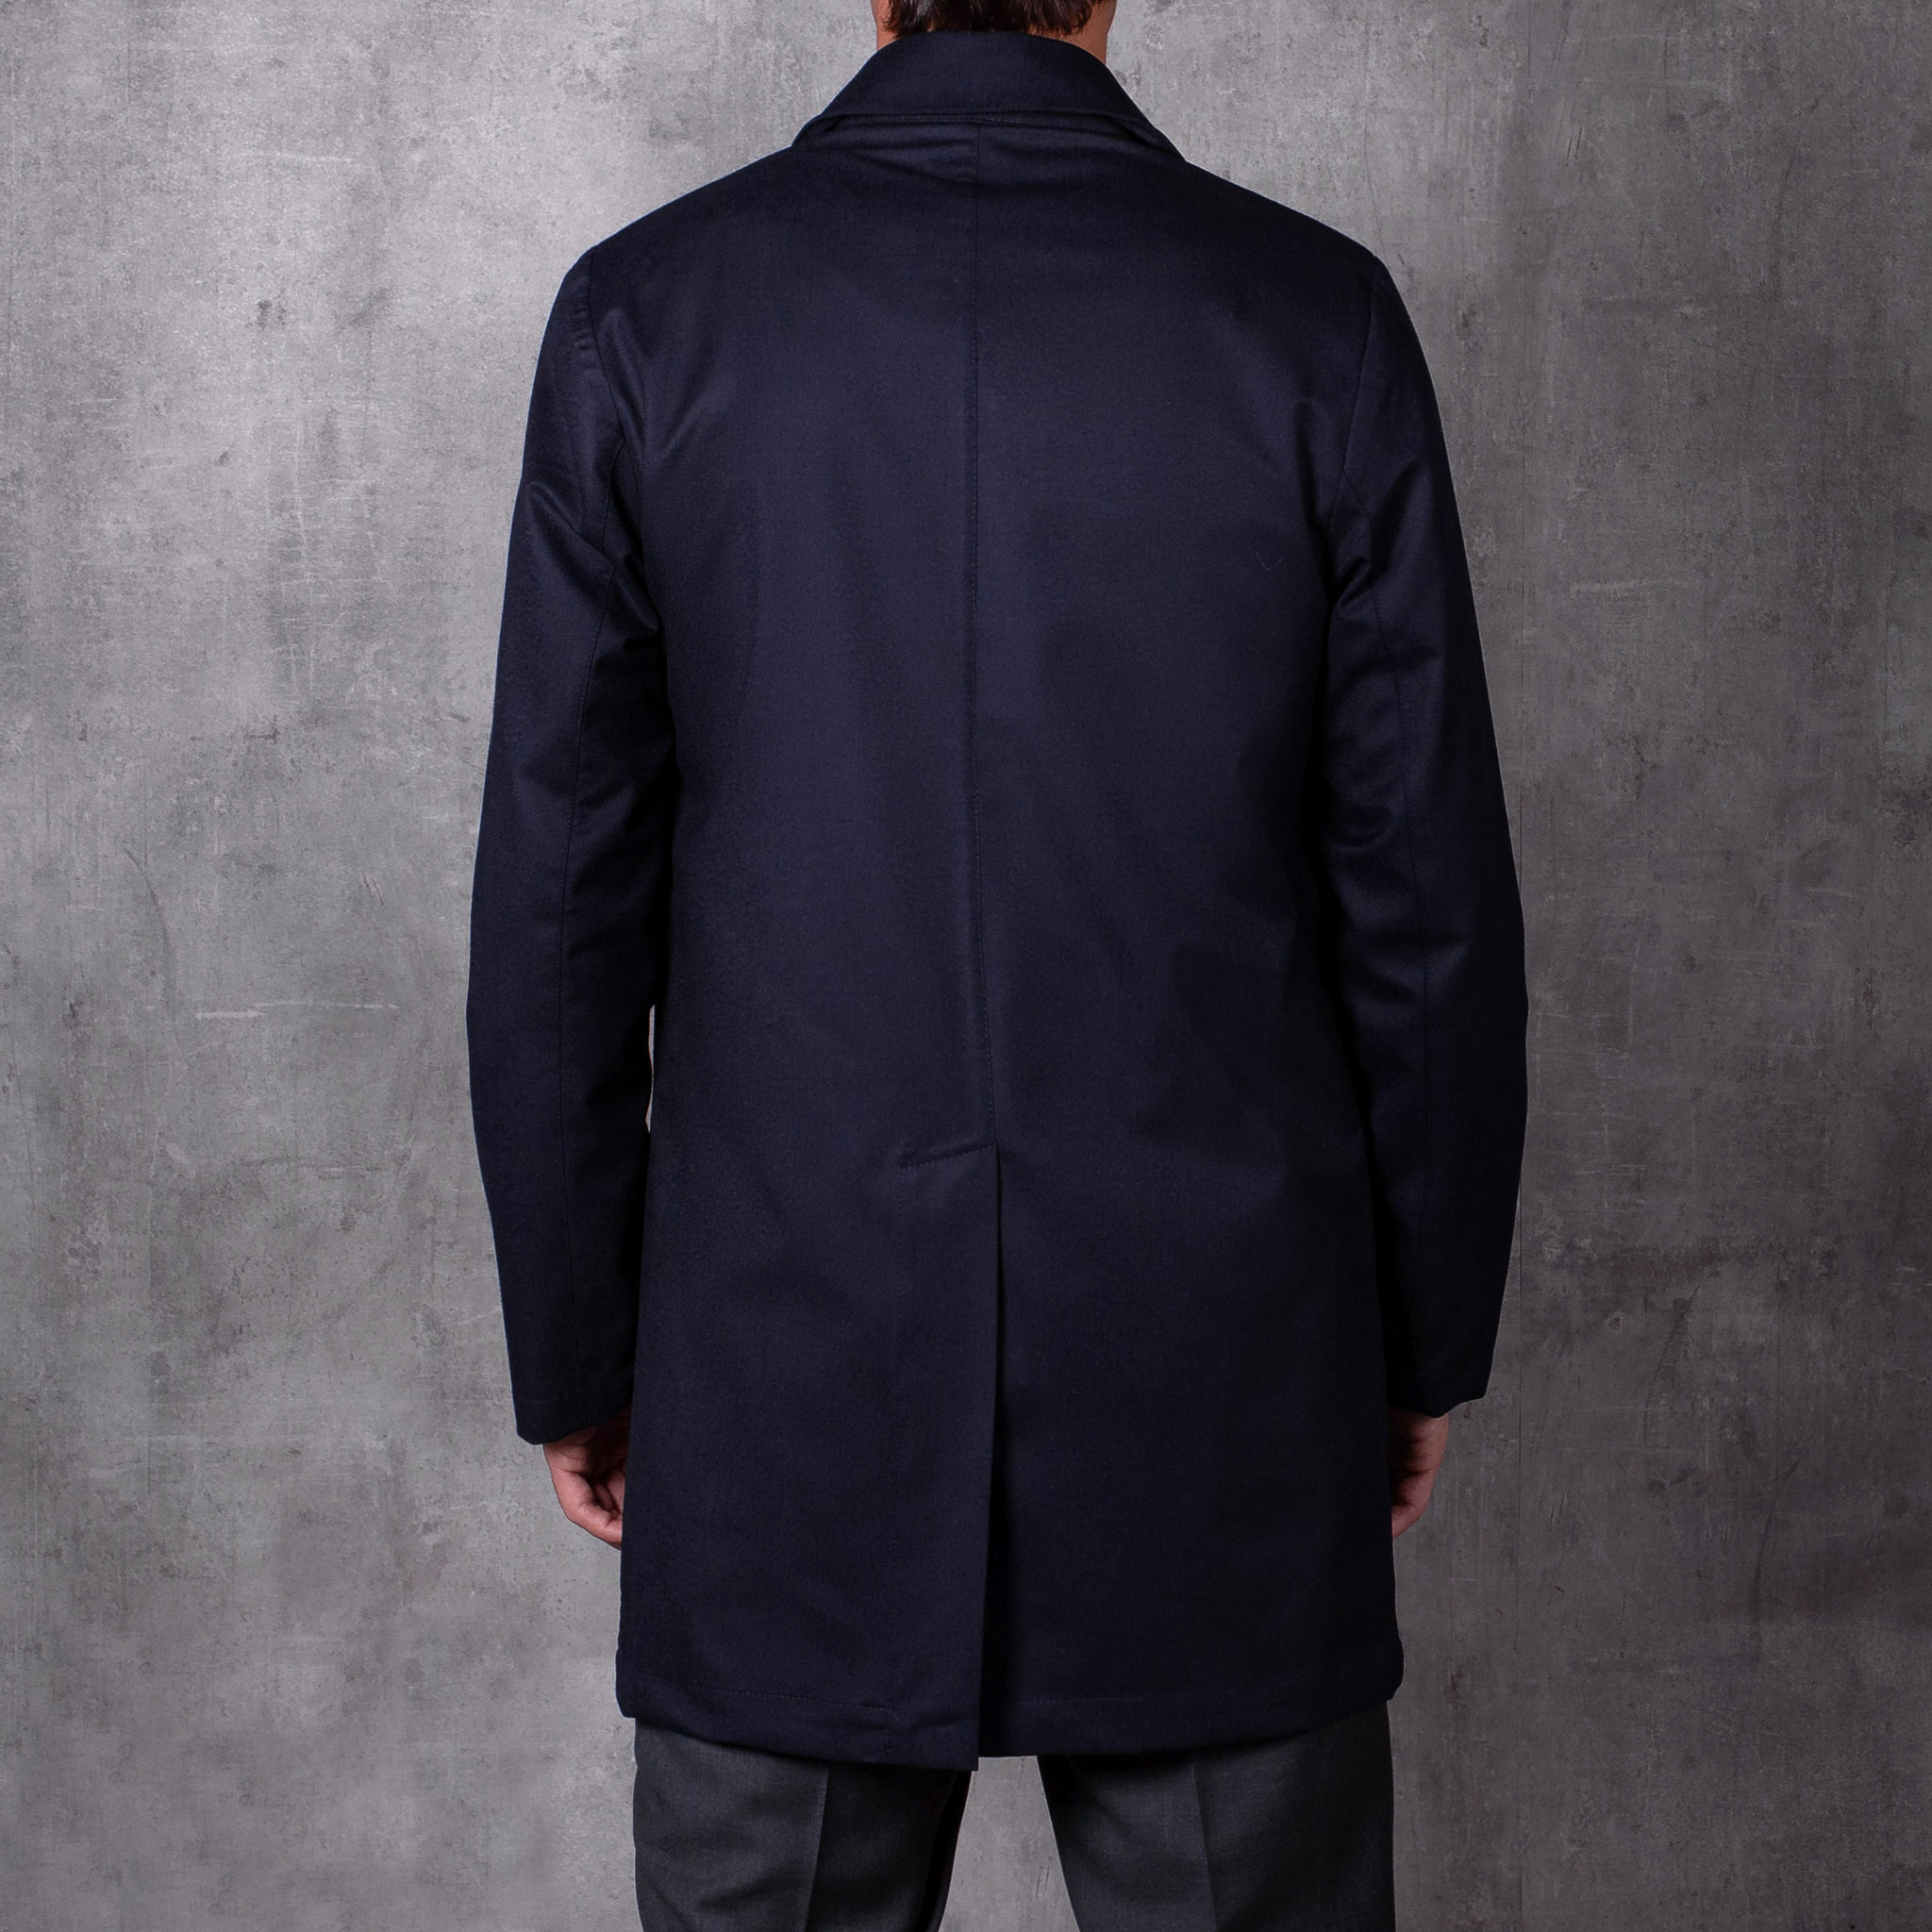 RAINCOAT-GABARDINA-01-01-The-Seelk-3